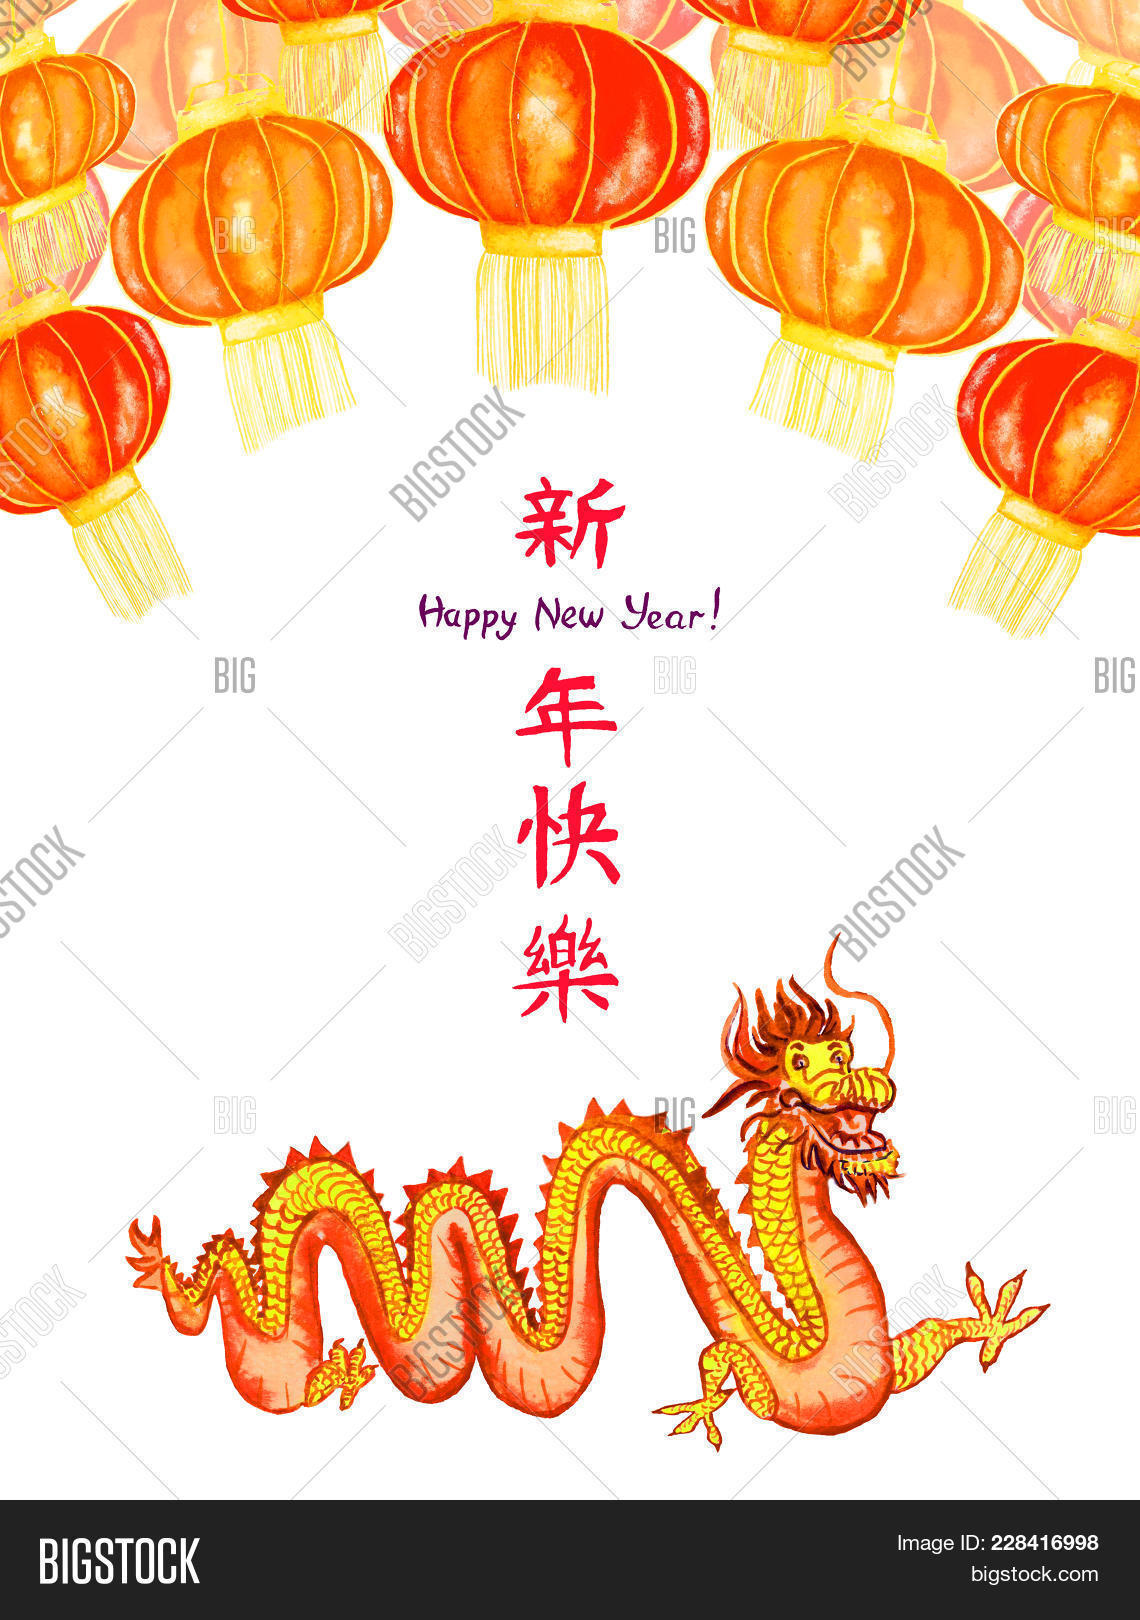 Chinese New Year Image & Photo (Free Trial) | Bigstock